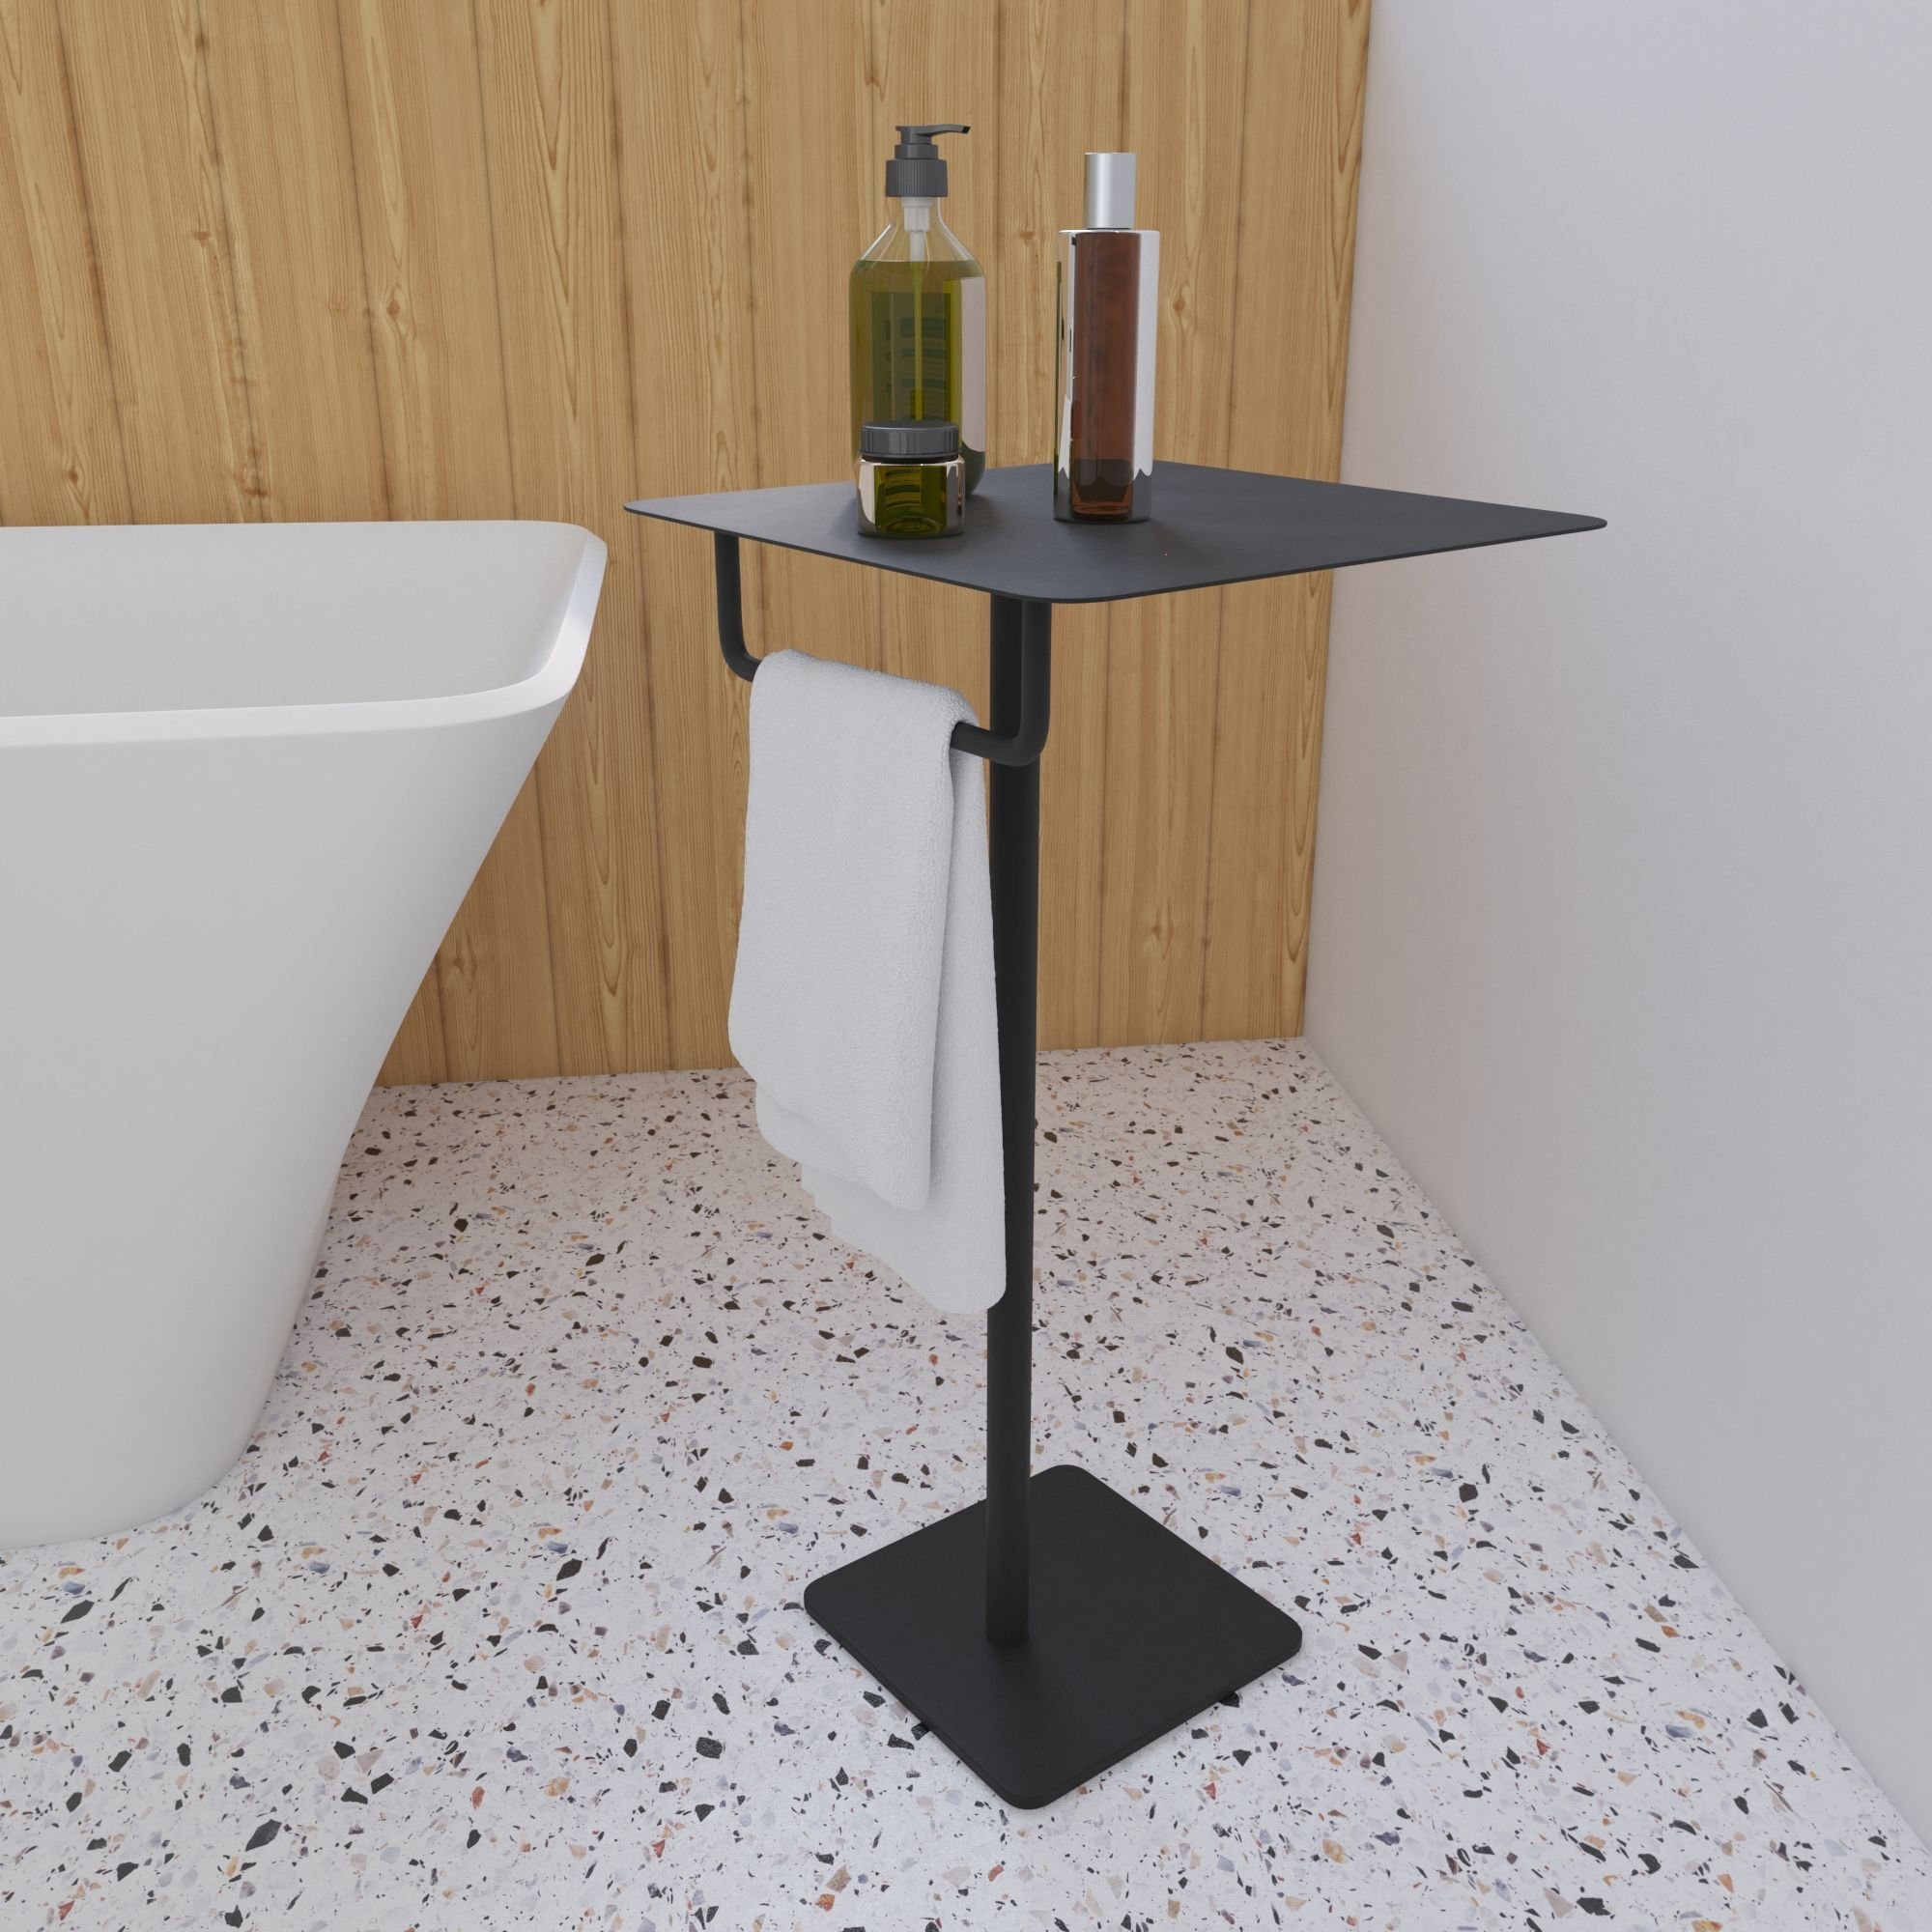 Black Bath Stand Shelf Small Bathroom Table Soak Com Bathroom Table Small Bathroom Table Amazing Bathrooms